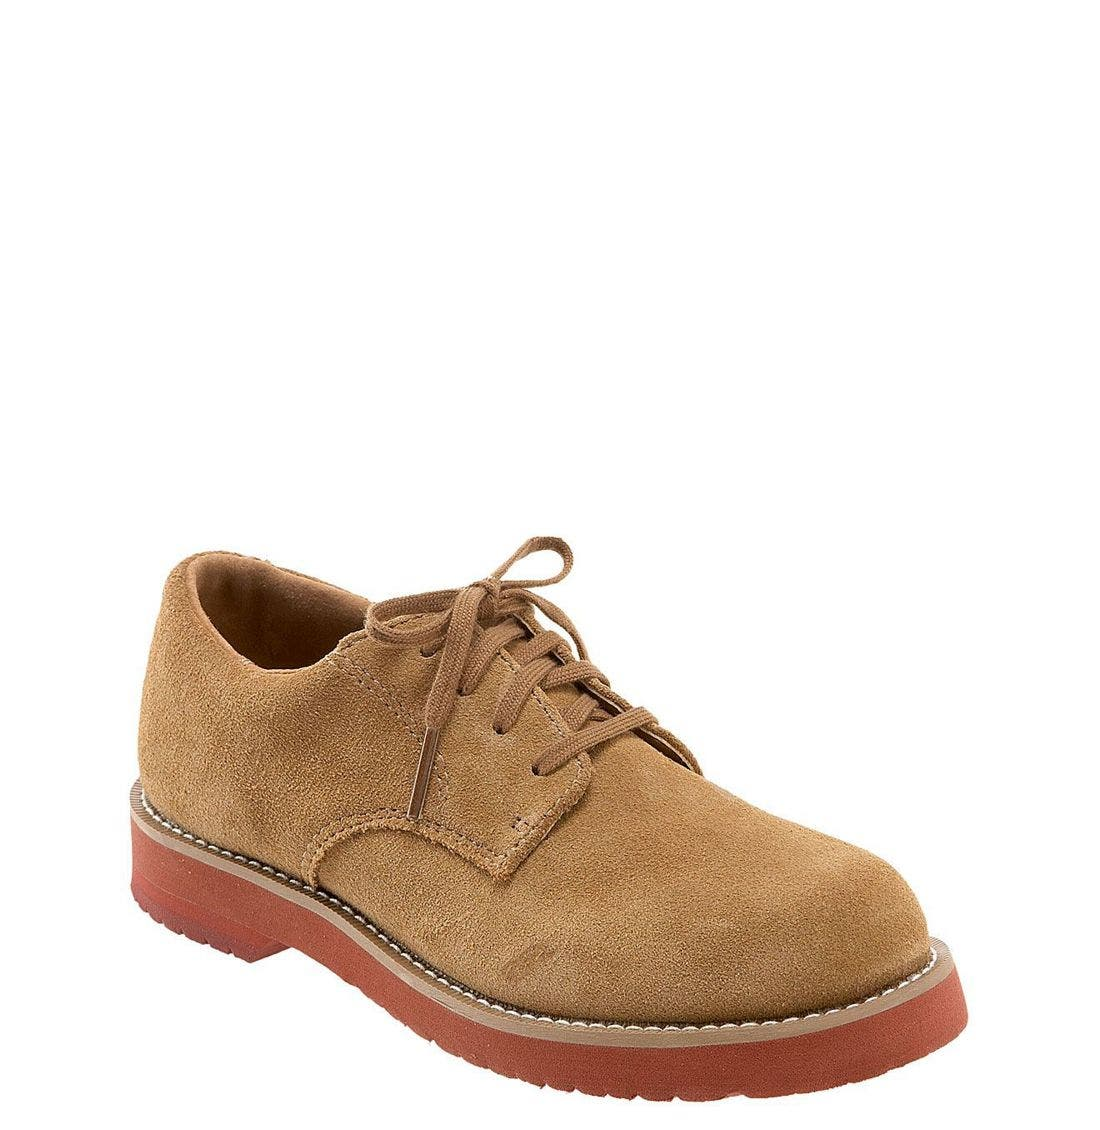 Alternate Image 1 Selected - Sperry Kids 'Tevin' Oxford (Walker, Toddler, Little Kid & Big Kid)